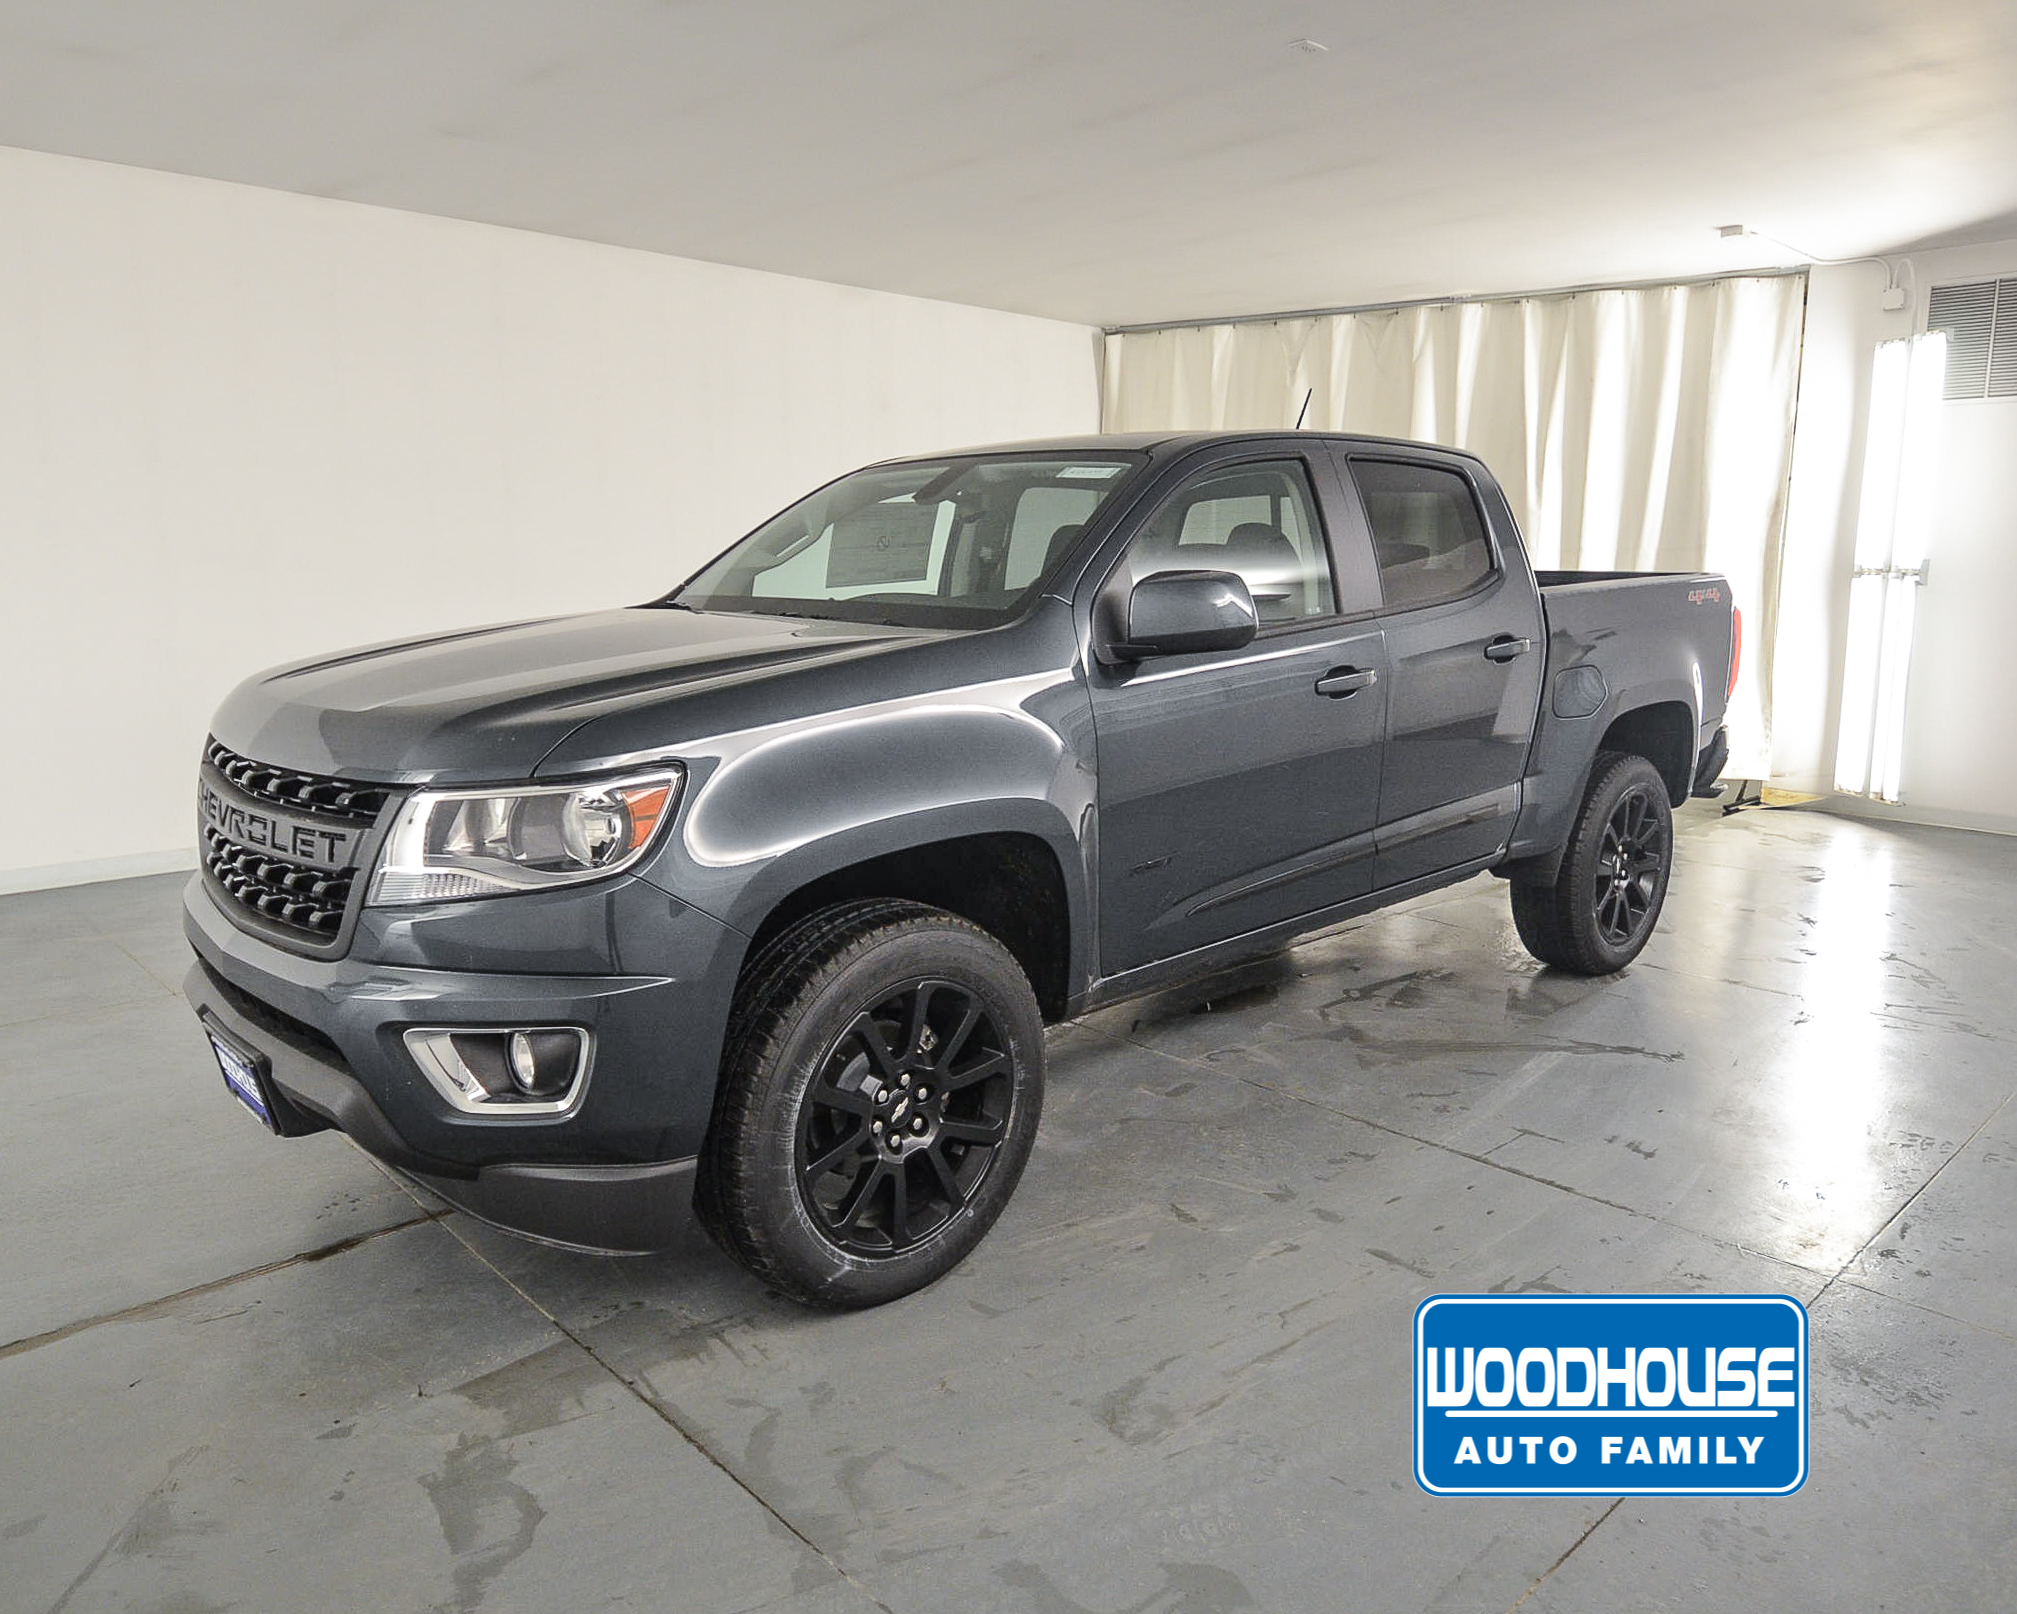 woodhouse new 2019 chevrolet colorado for sale chevy buick woodhouse